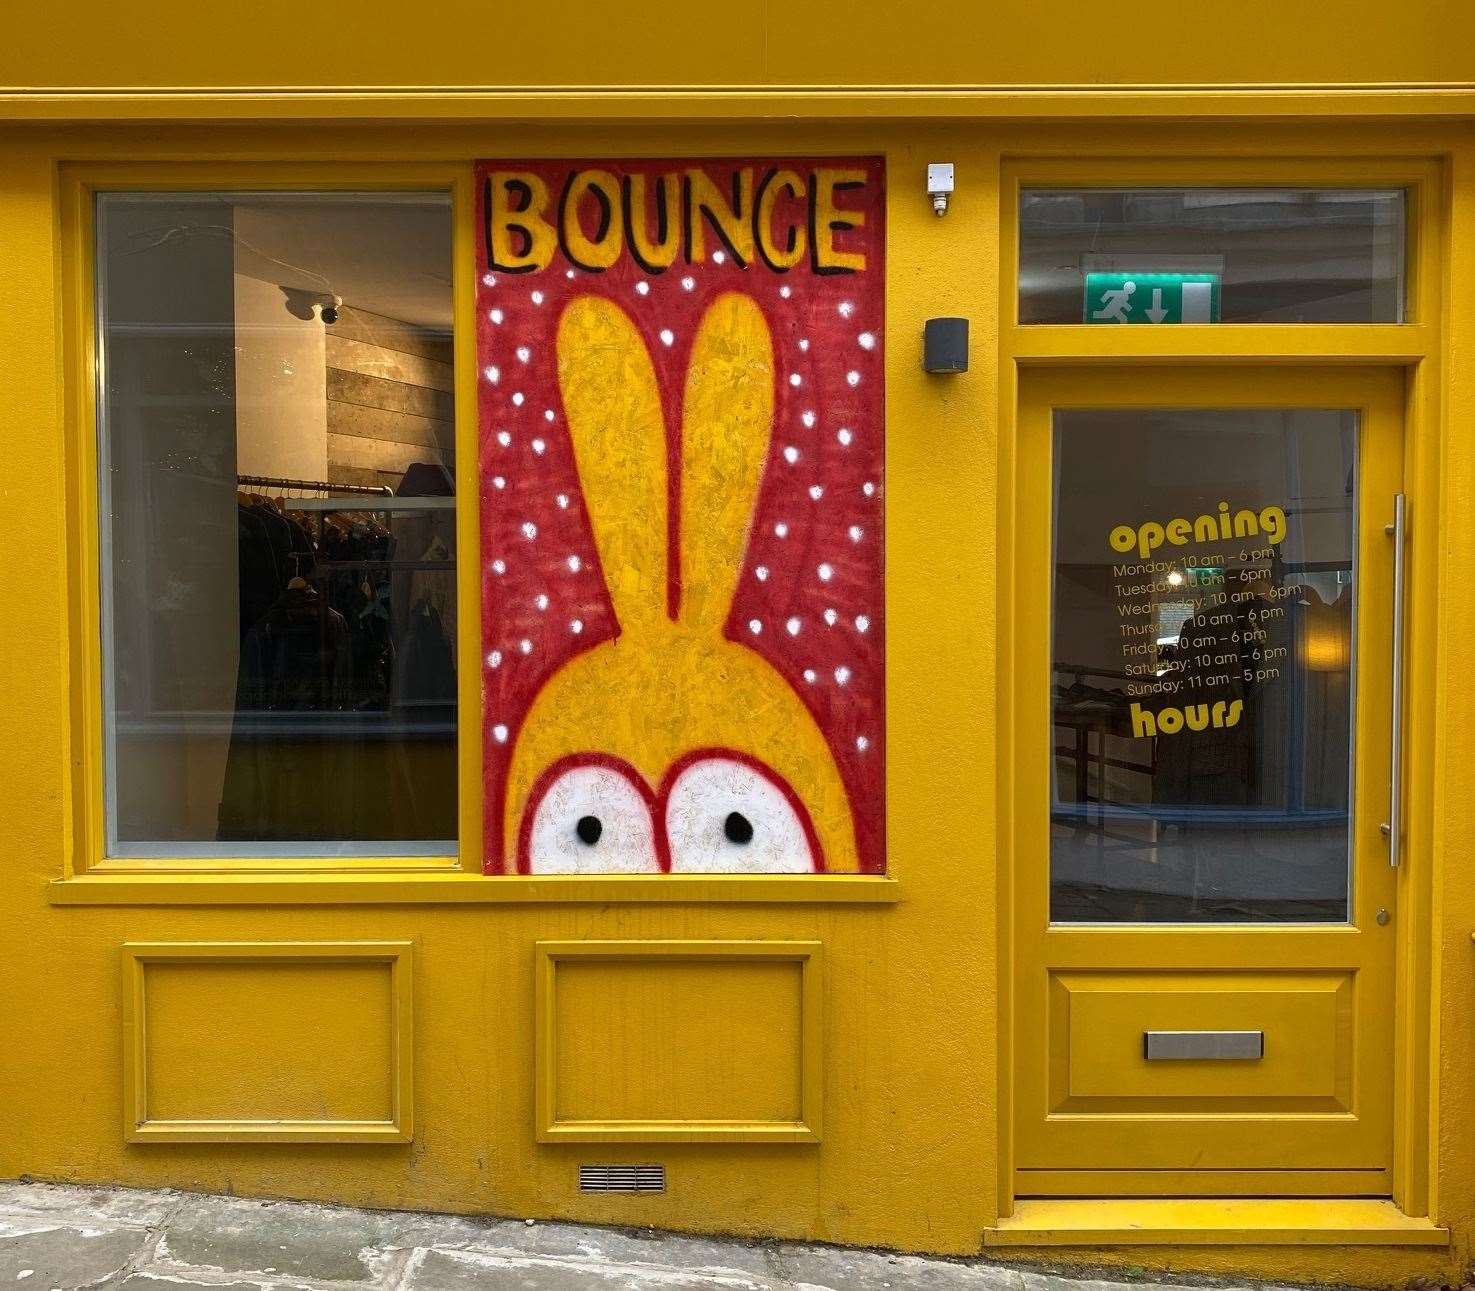 The owners of Bounce Vintage had their shop window smashed during the spree. They have since put boarding up, painted by artist Duncan Weston. Picture credit: Bounce Vintage